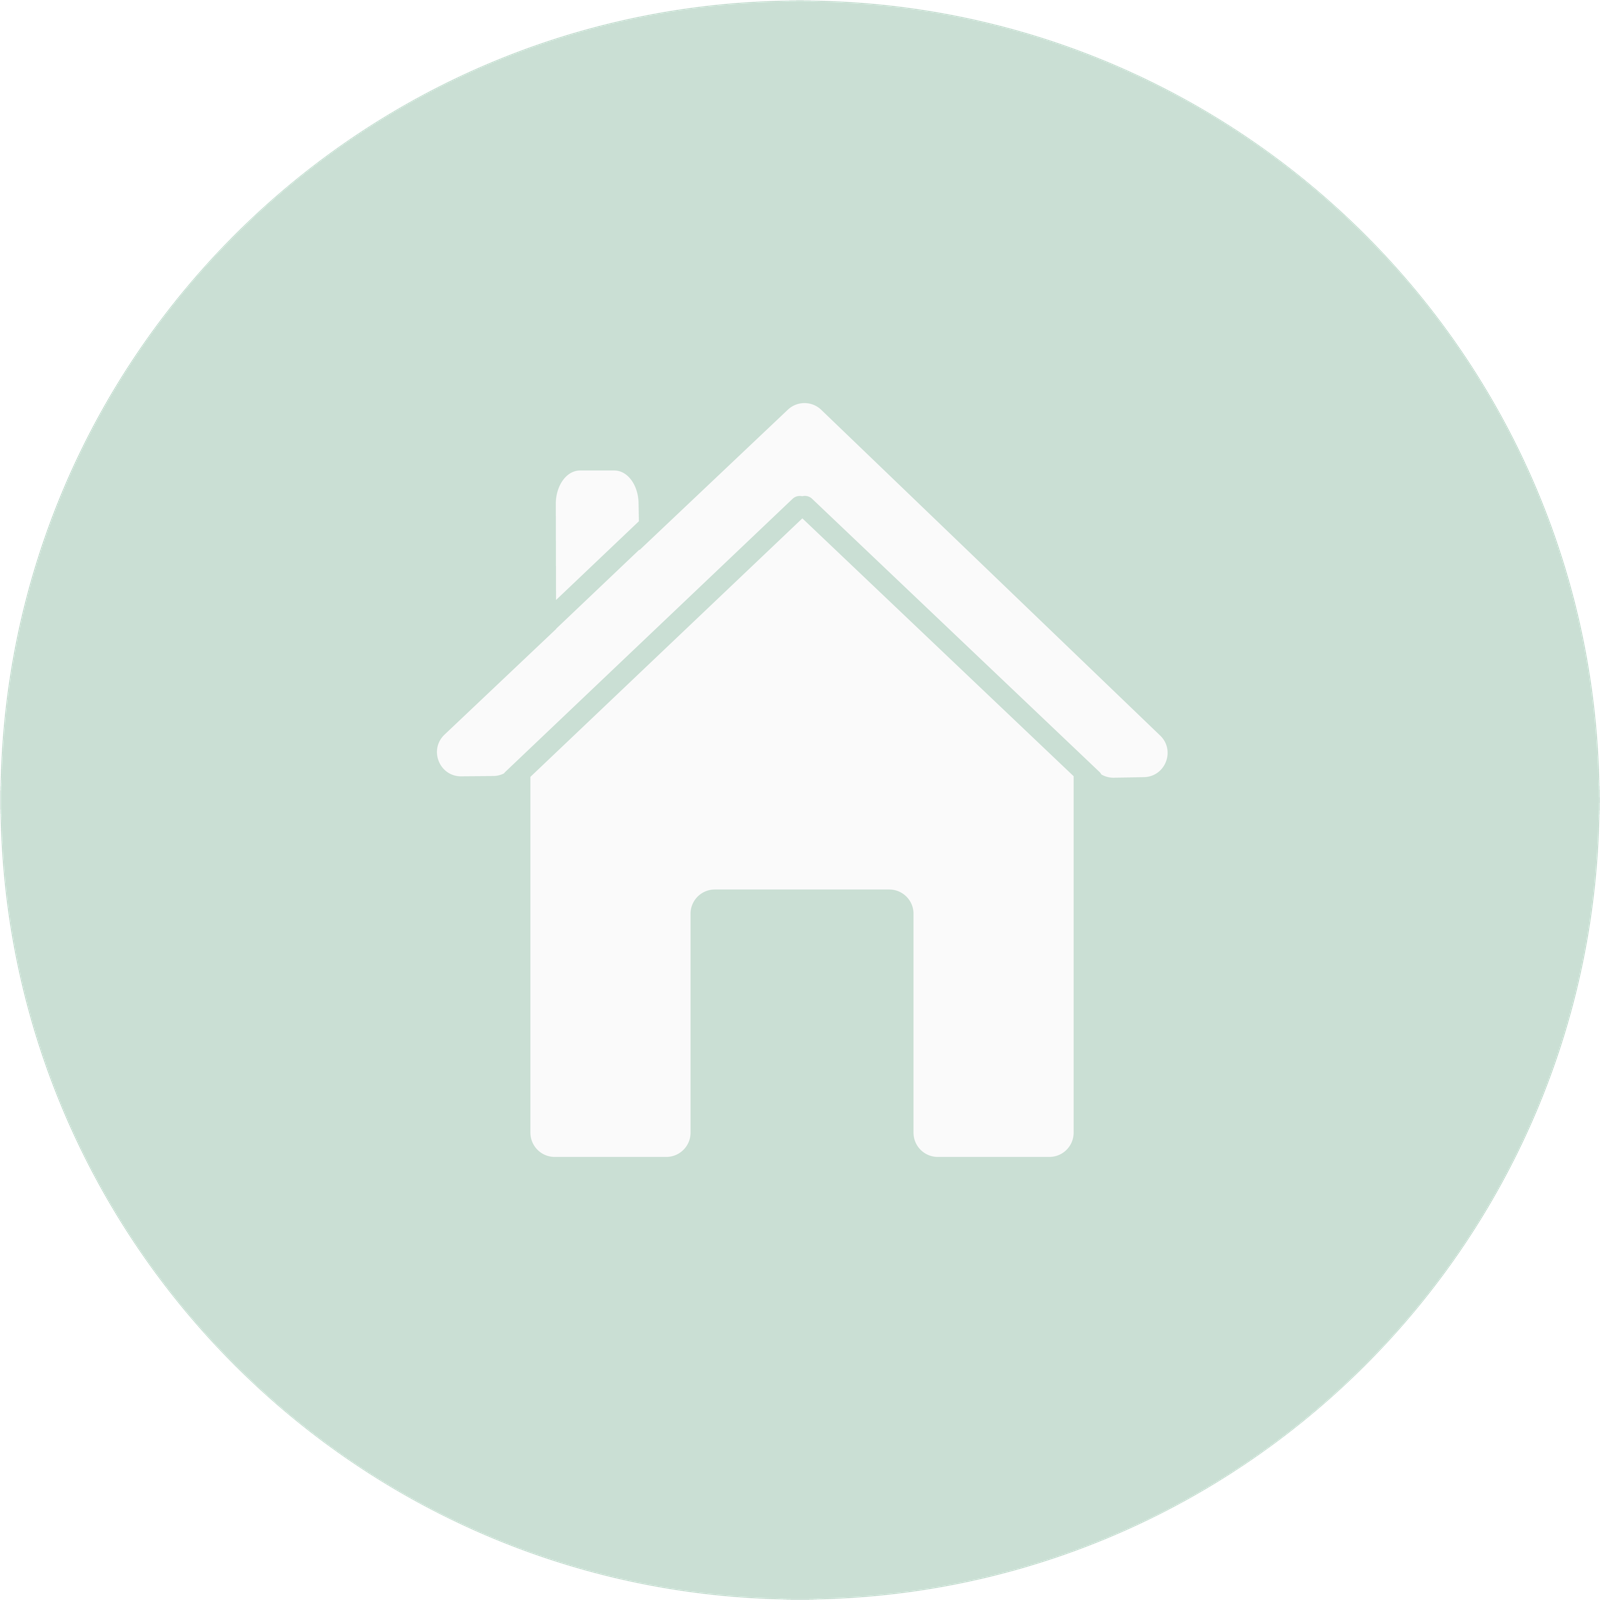 white icon of a house within a circle